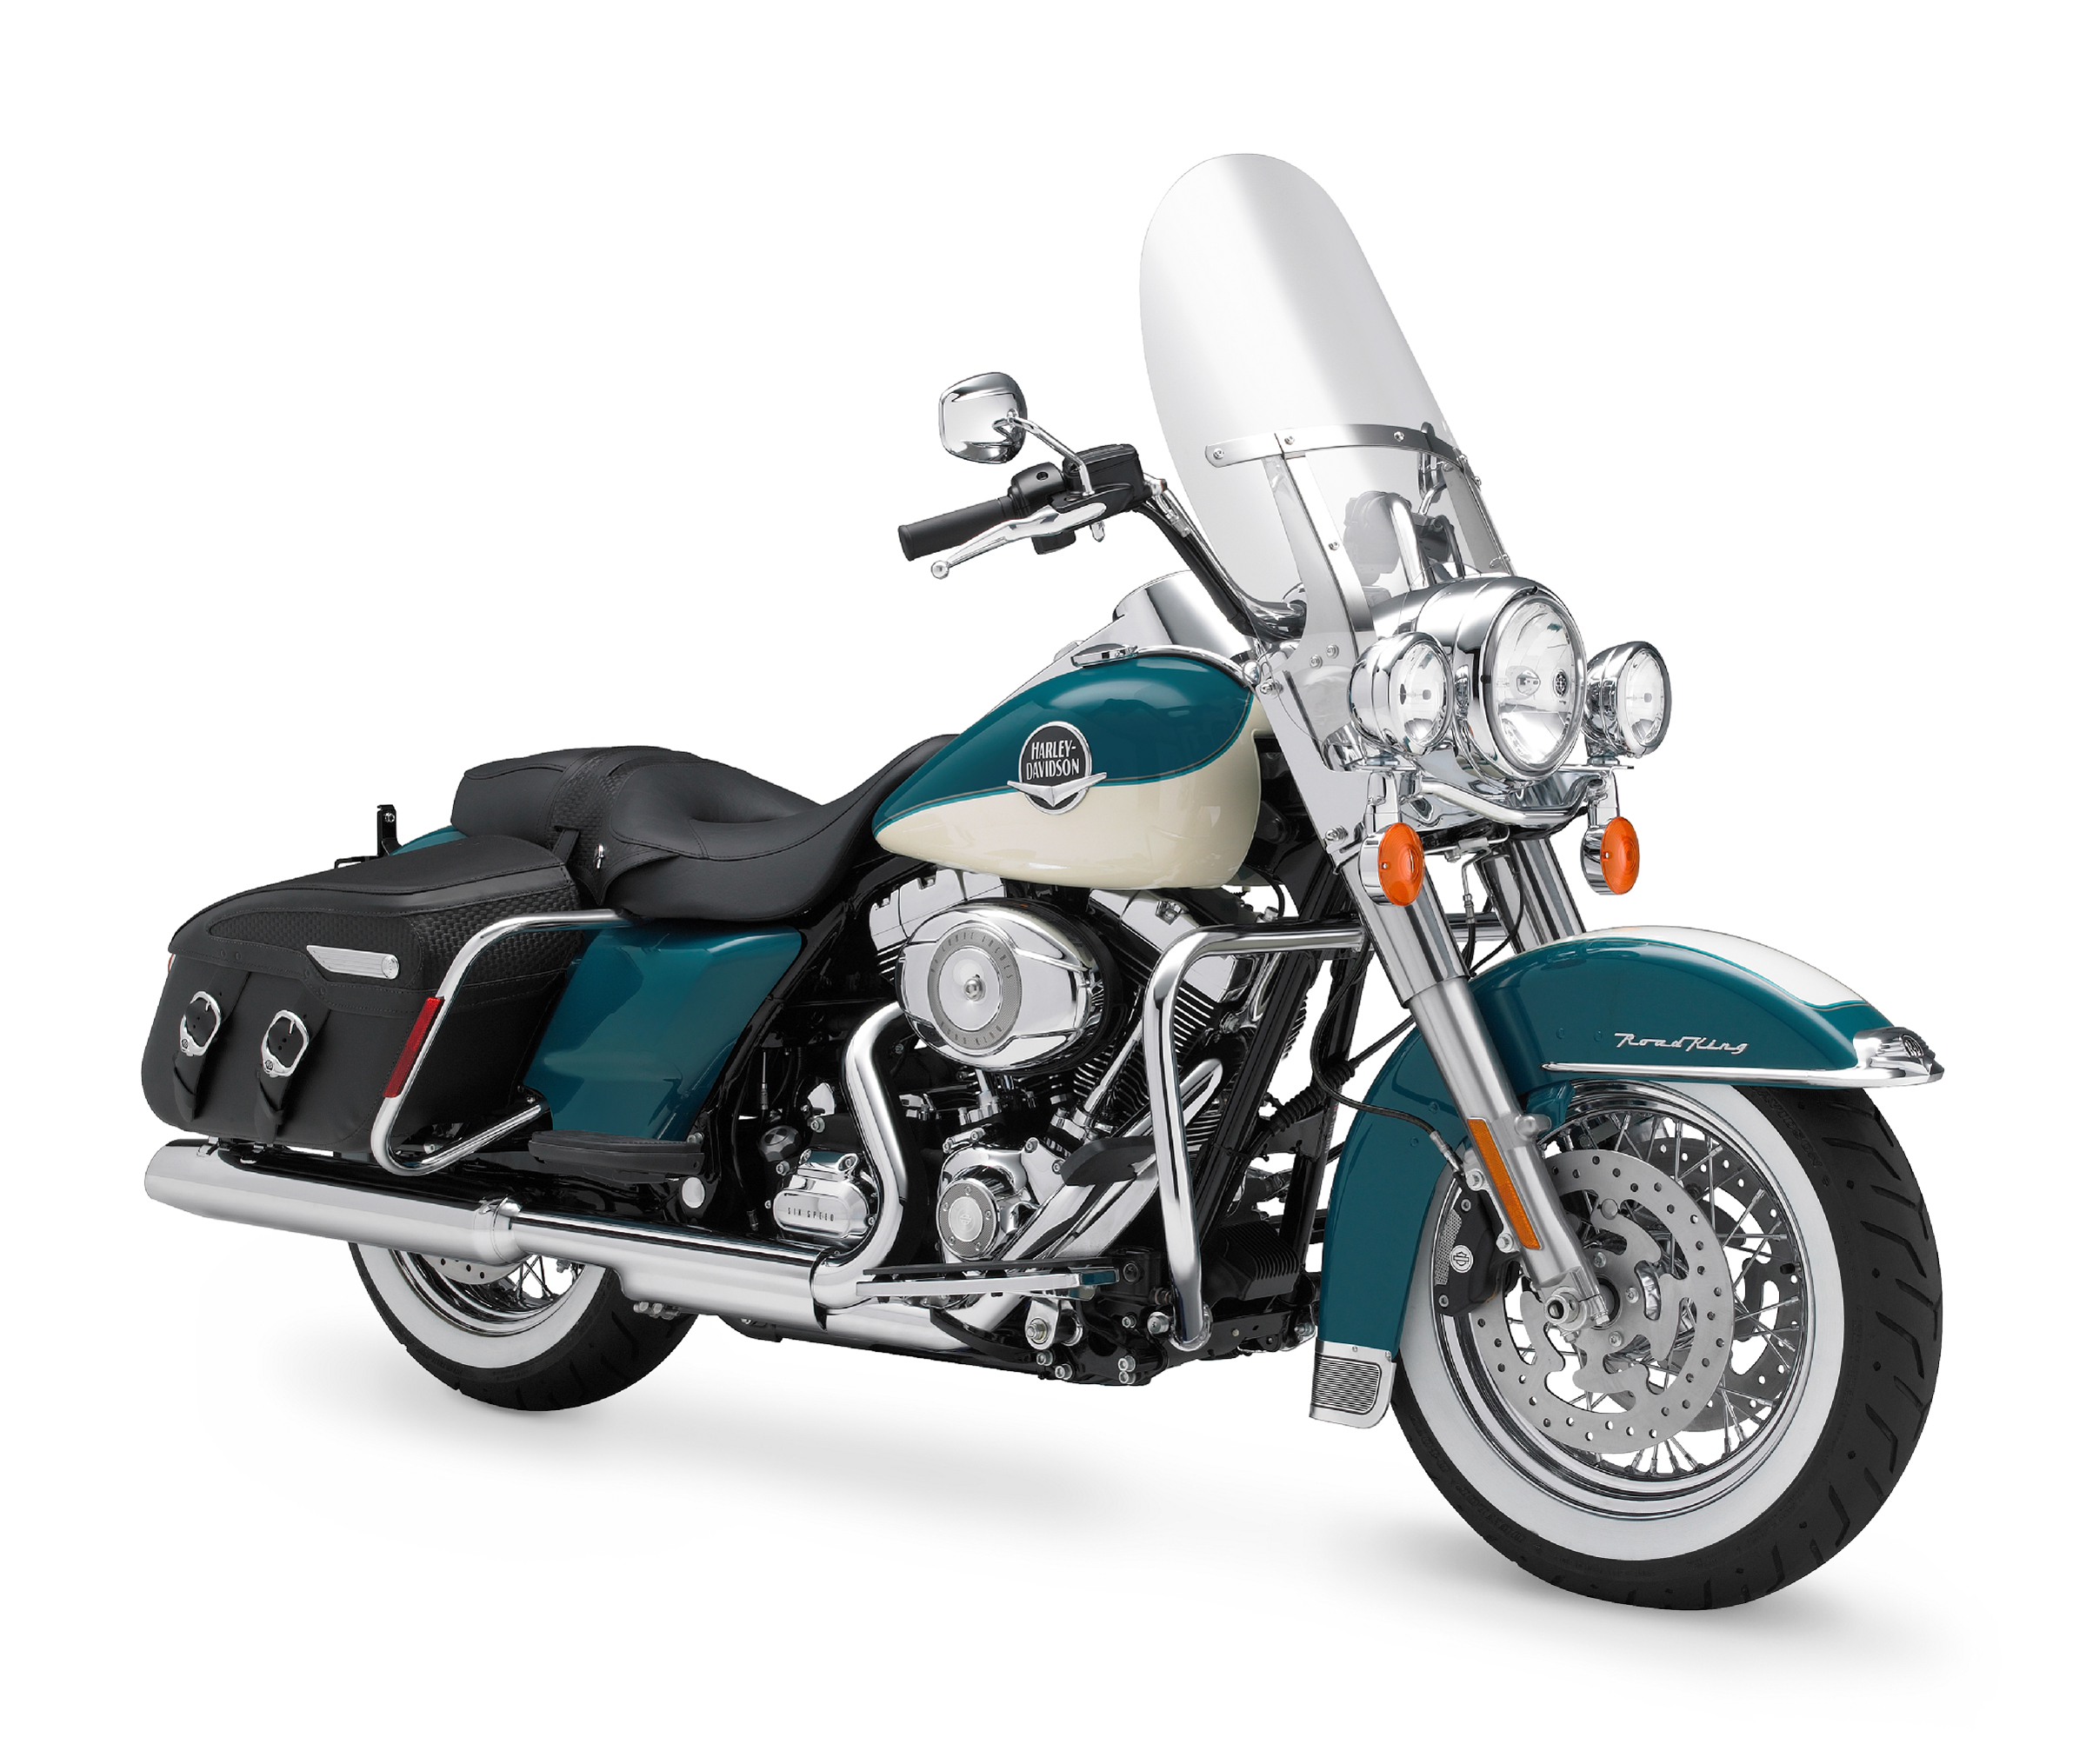 Enjoyable 2009 Harley Davidson Touring Top Speed Alphanode Cool Chair Designs And Ideas Alphanodeonline